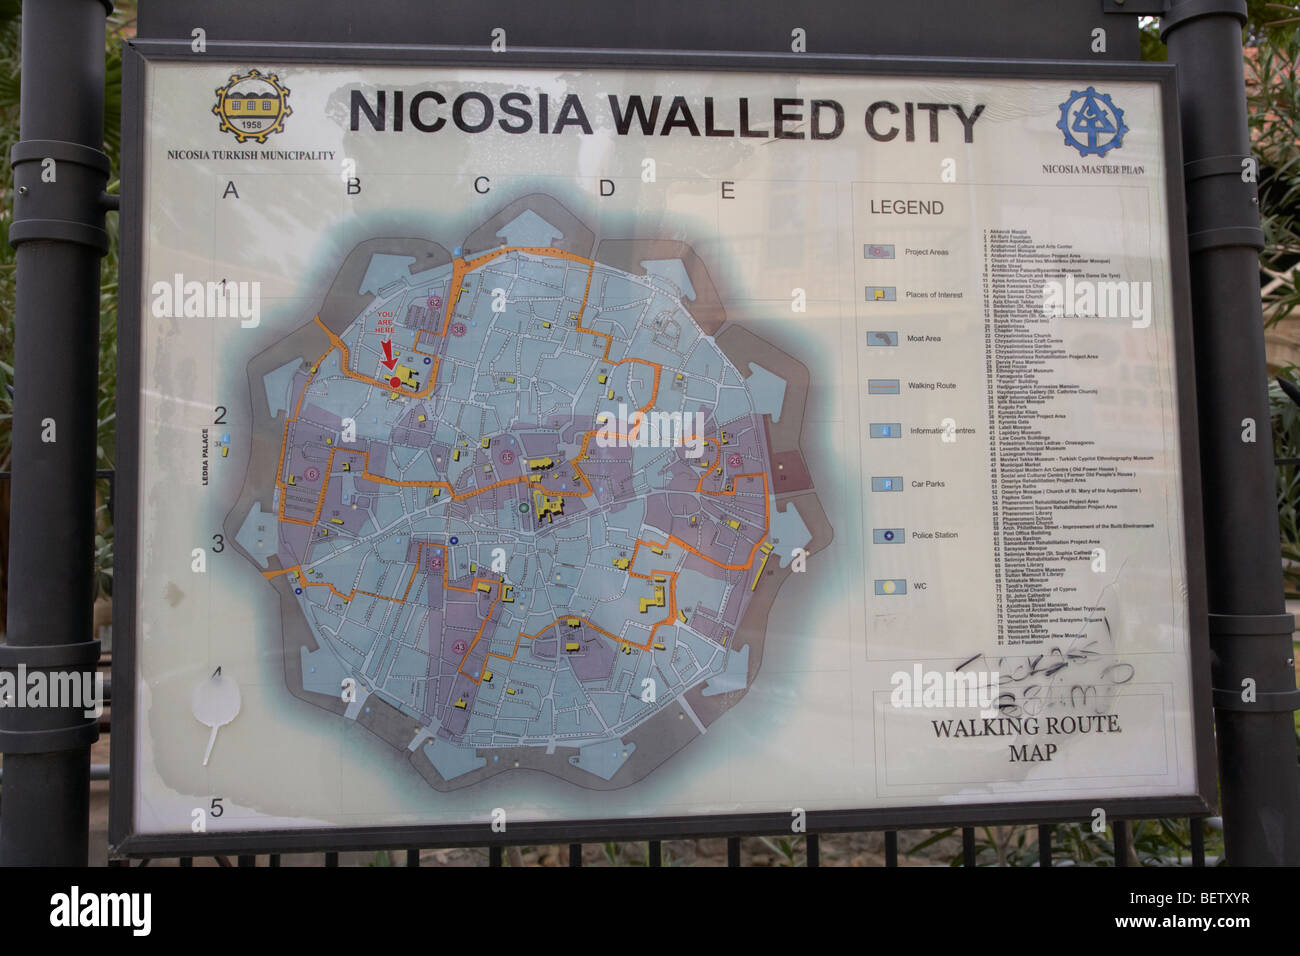 tourist information map of walking tours of the nicosia walled city ...